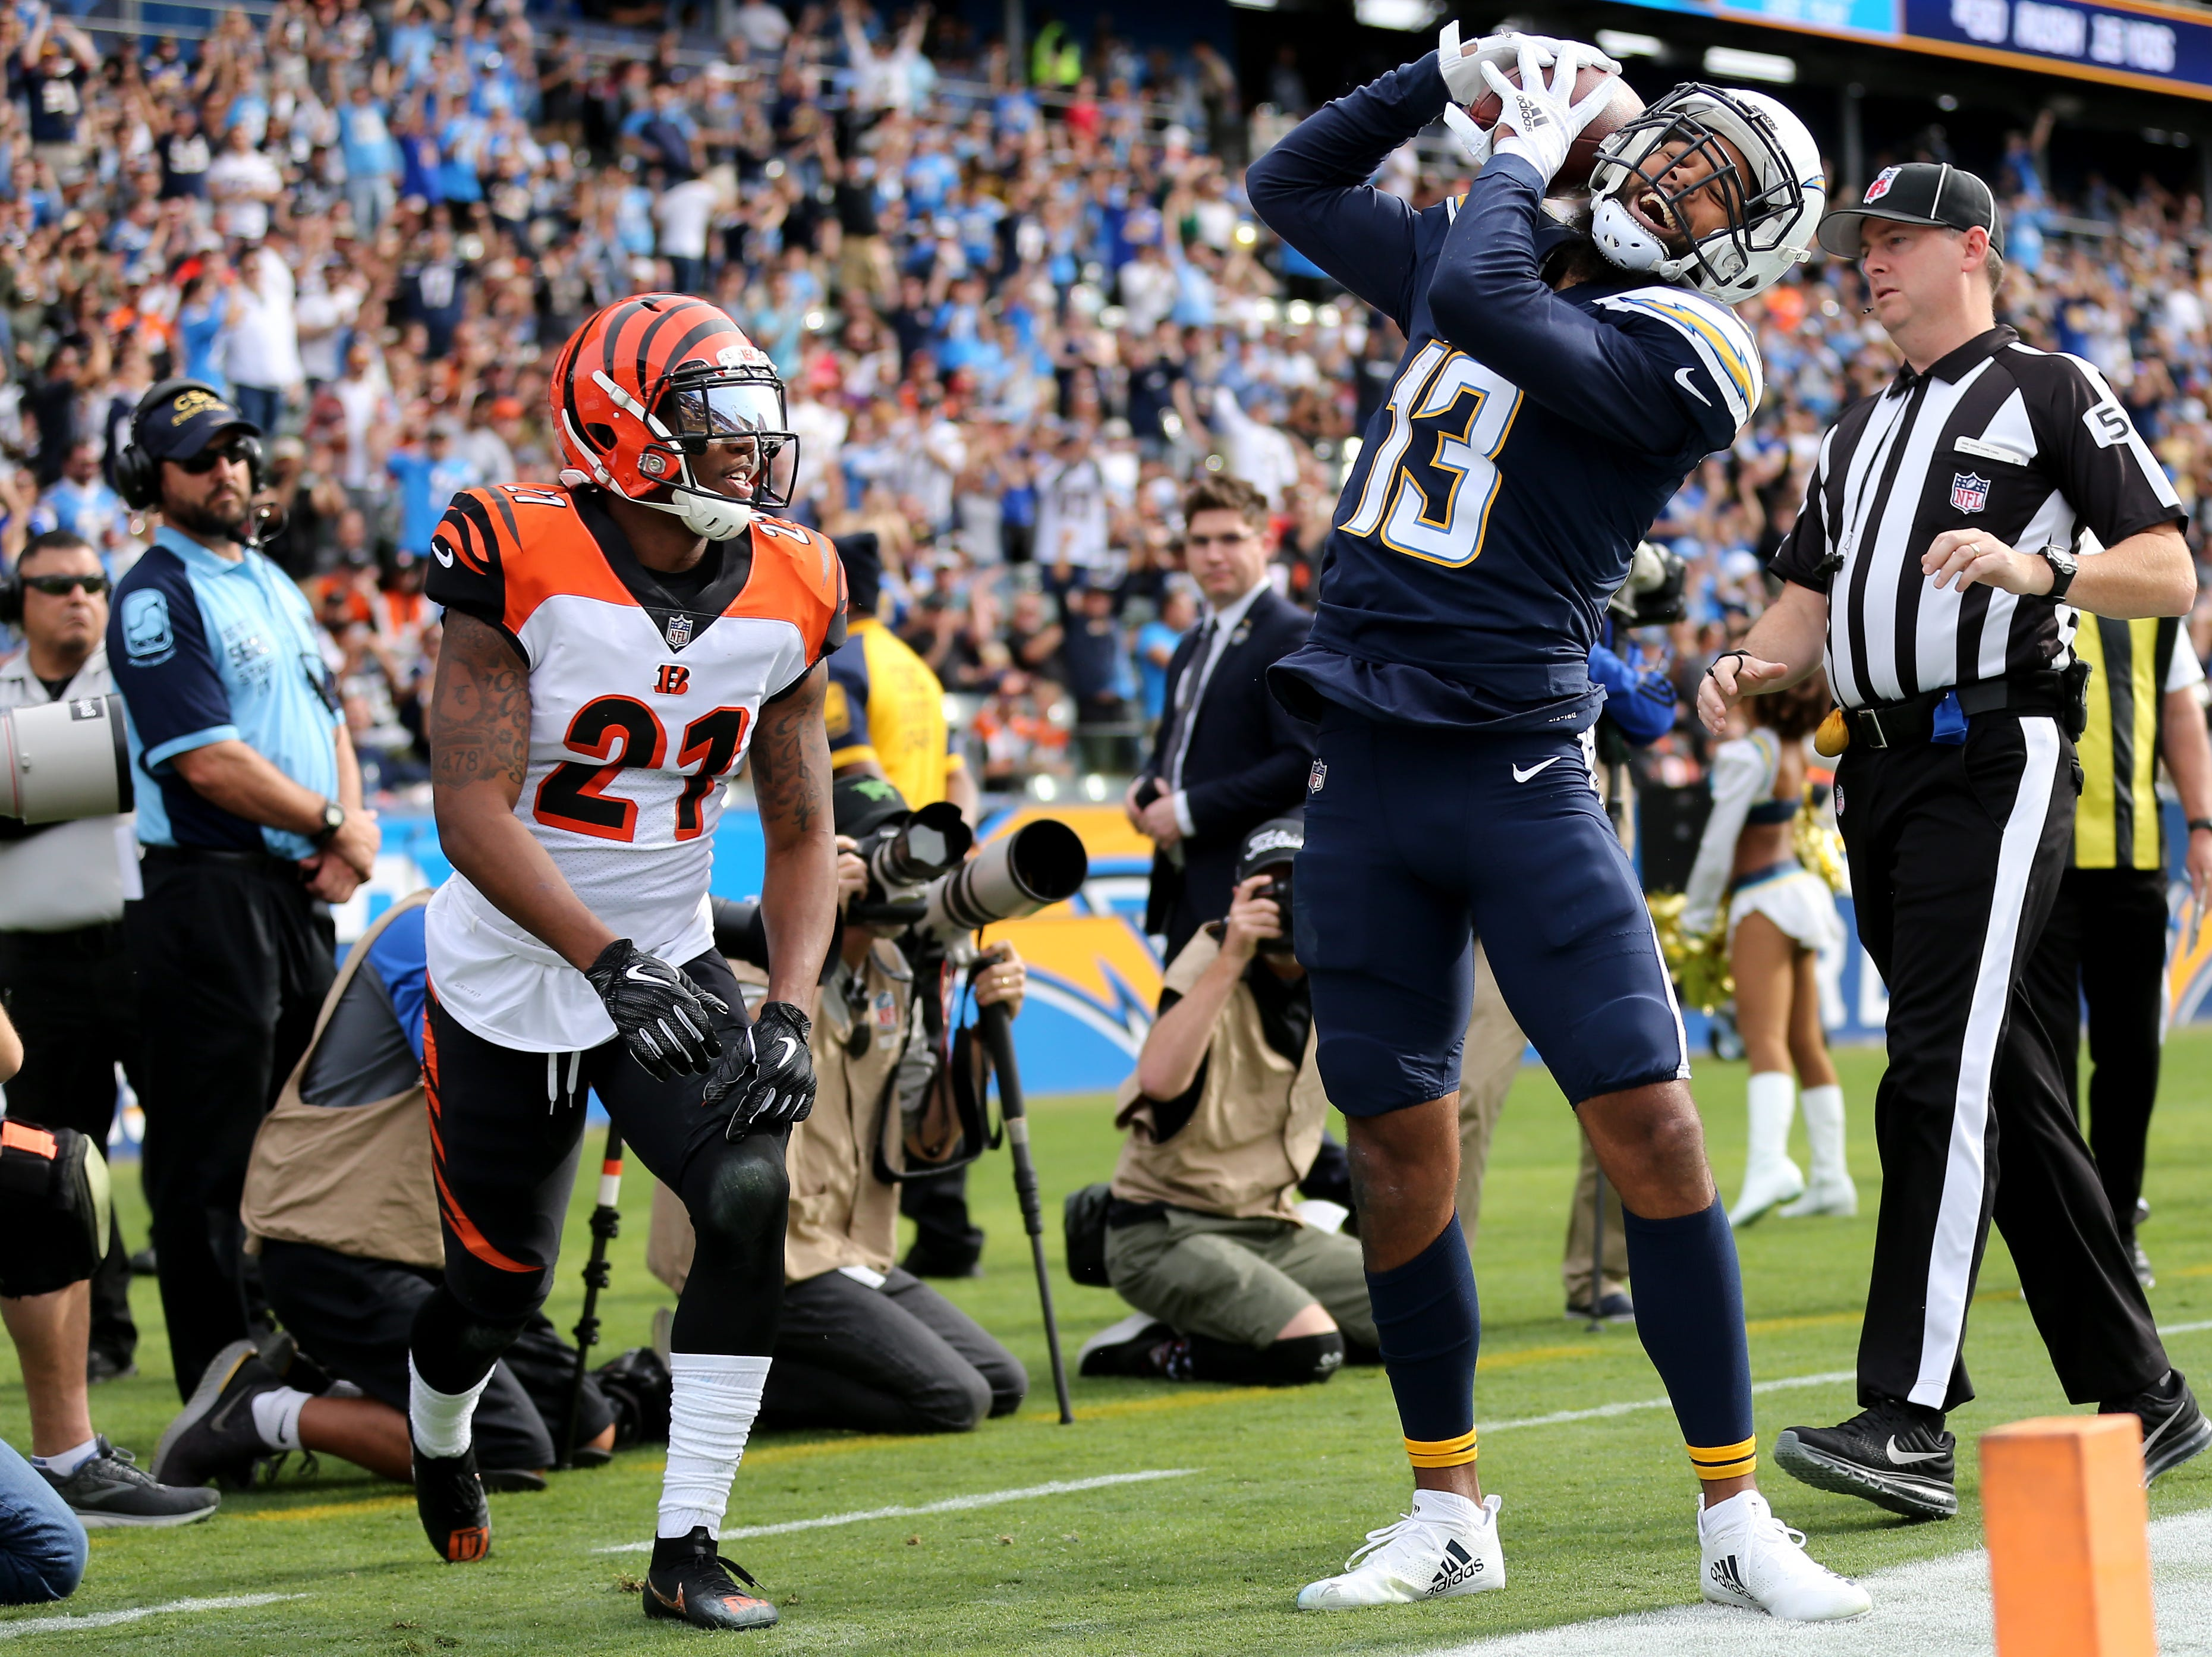 Los Angeles Chargers wide receiver Keenan Allen (13) celebrates a touchdown pass as Cincinnati Bengals defensive back Darqueze Dennard (21) watches in the first quarter of a Week 14 NFL football game, Sunday, Dec. 9, 2018, at StubHub Center in Carson, California.